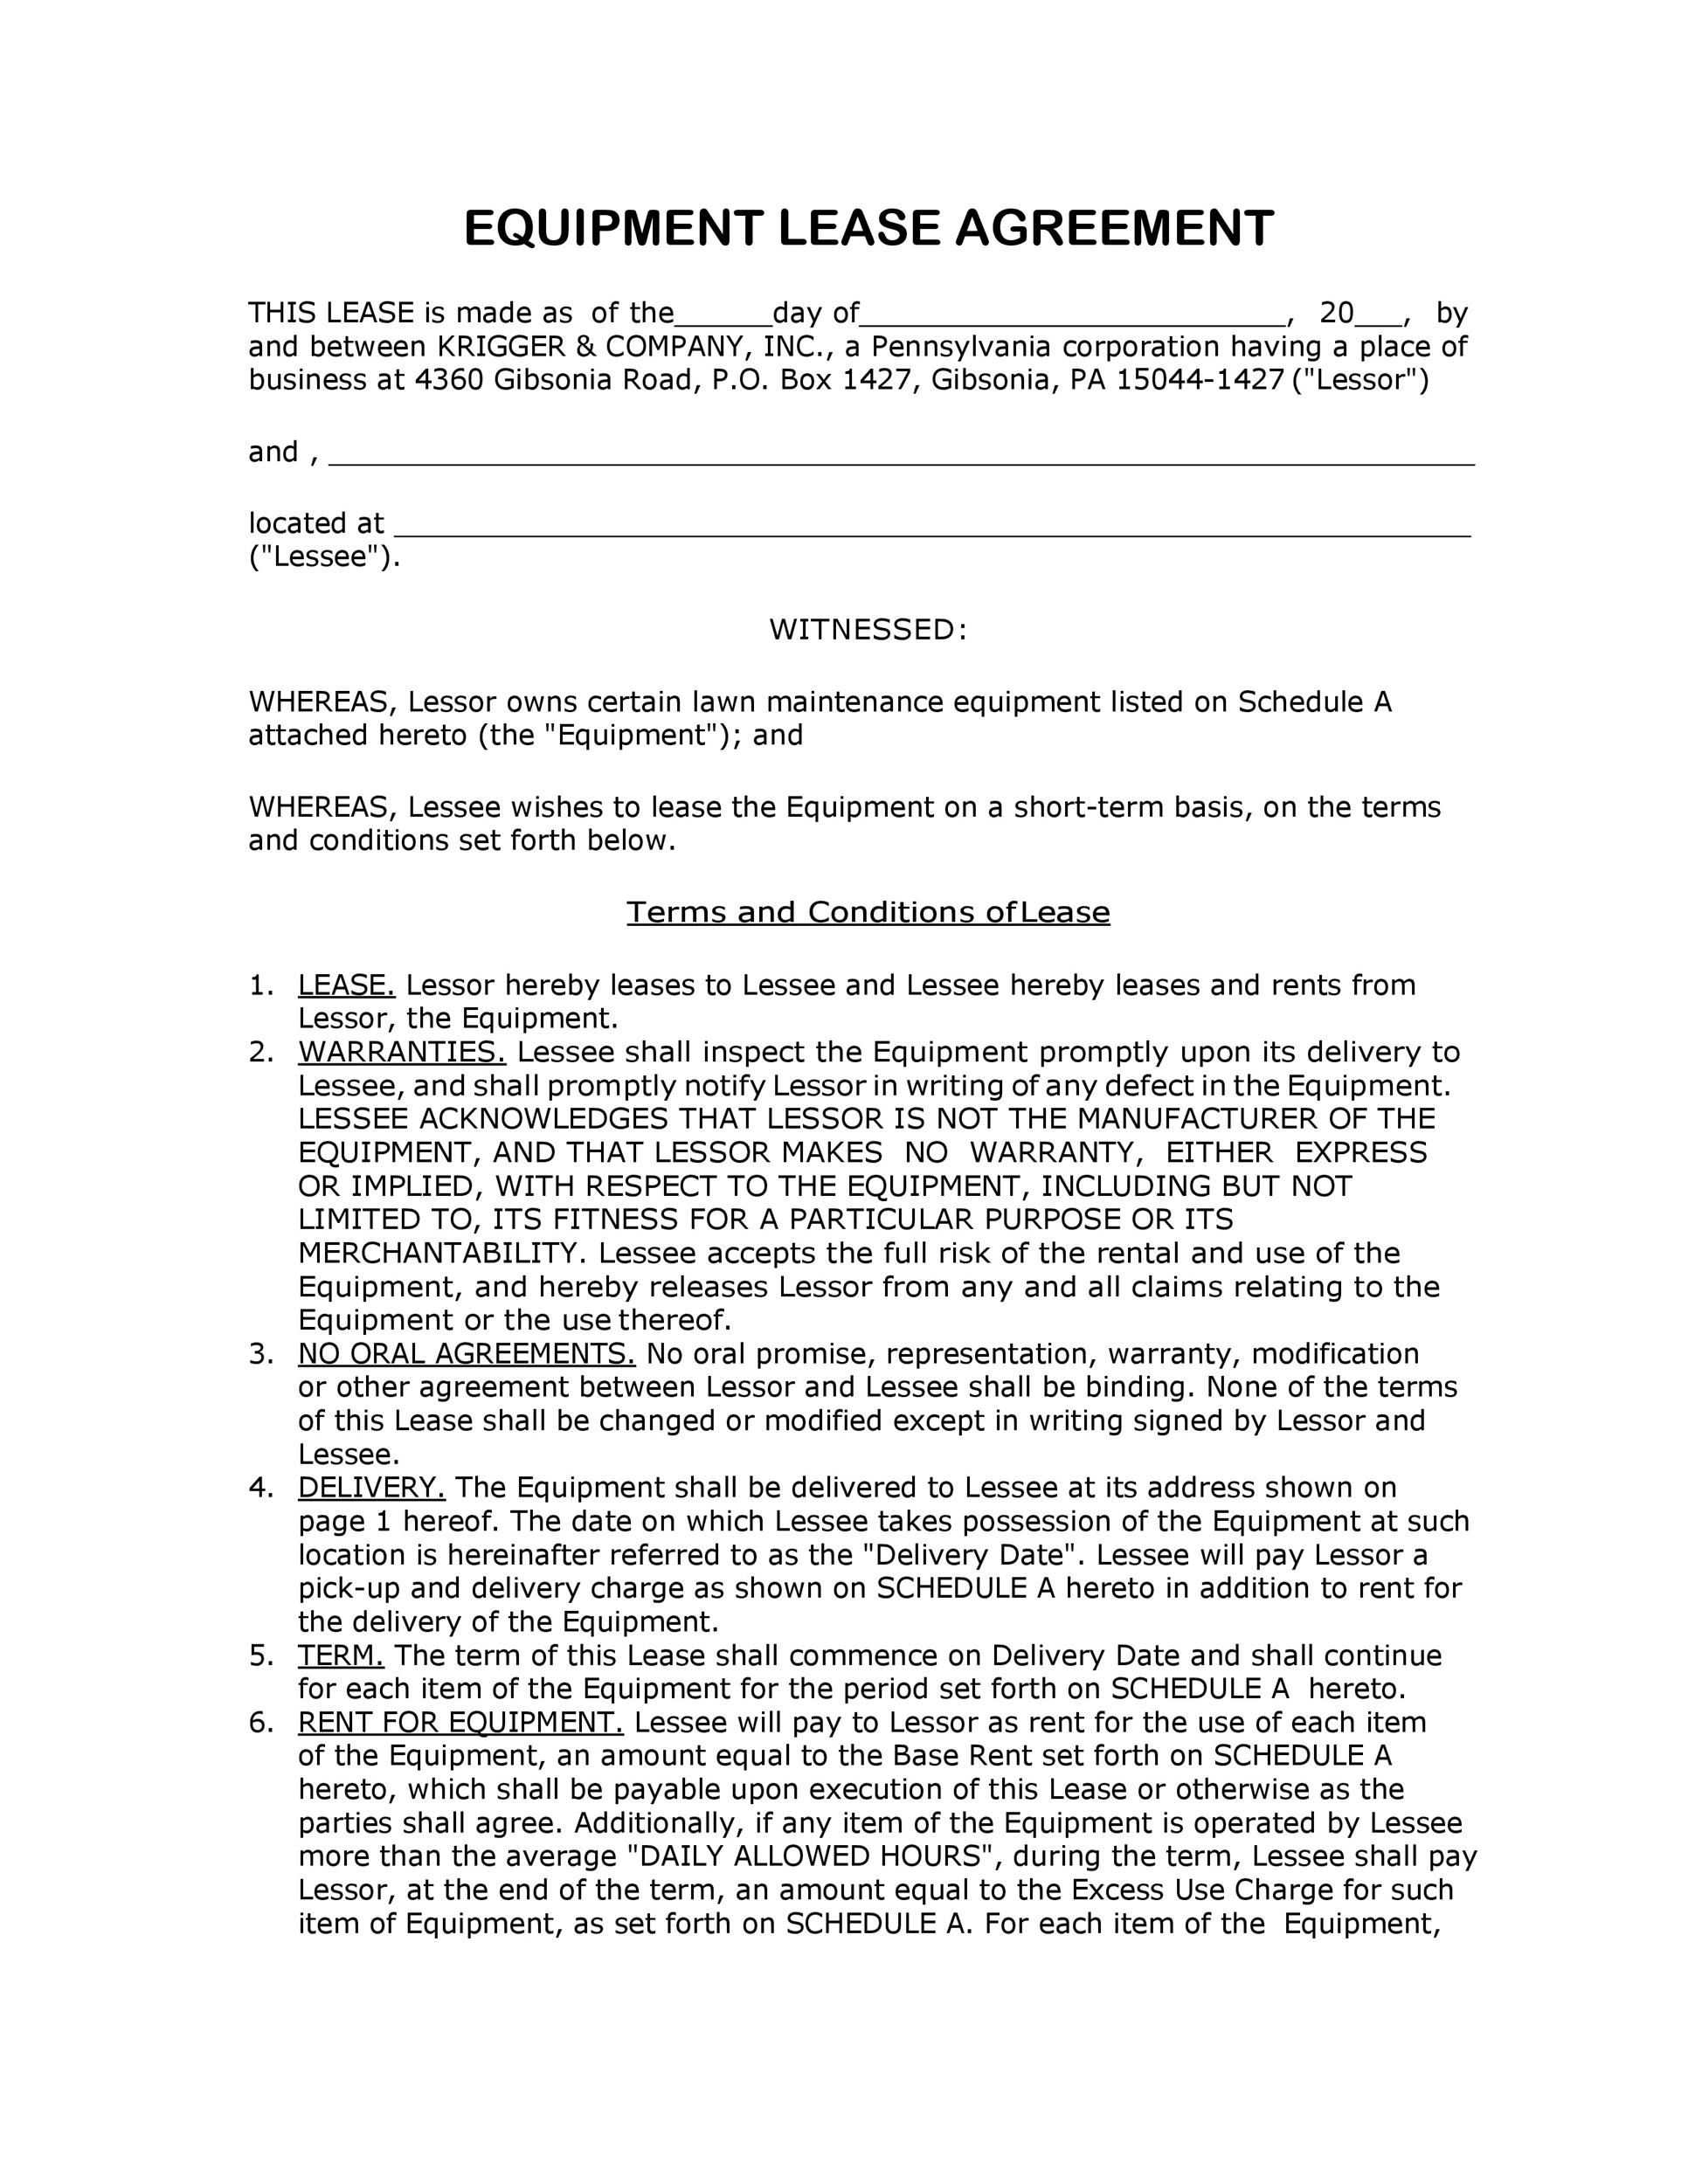 Free equipment lease agreement 13